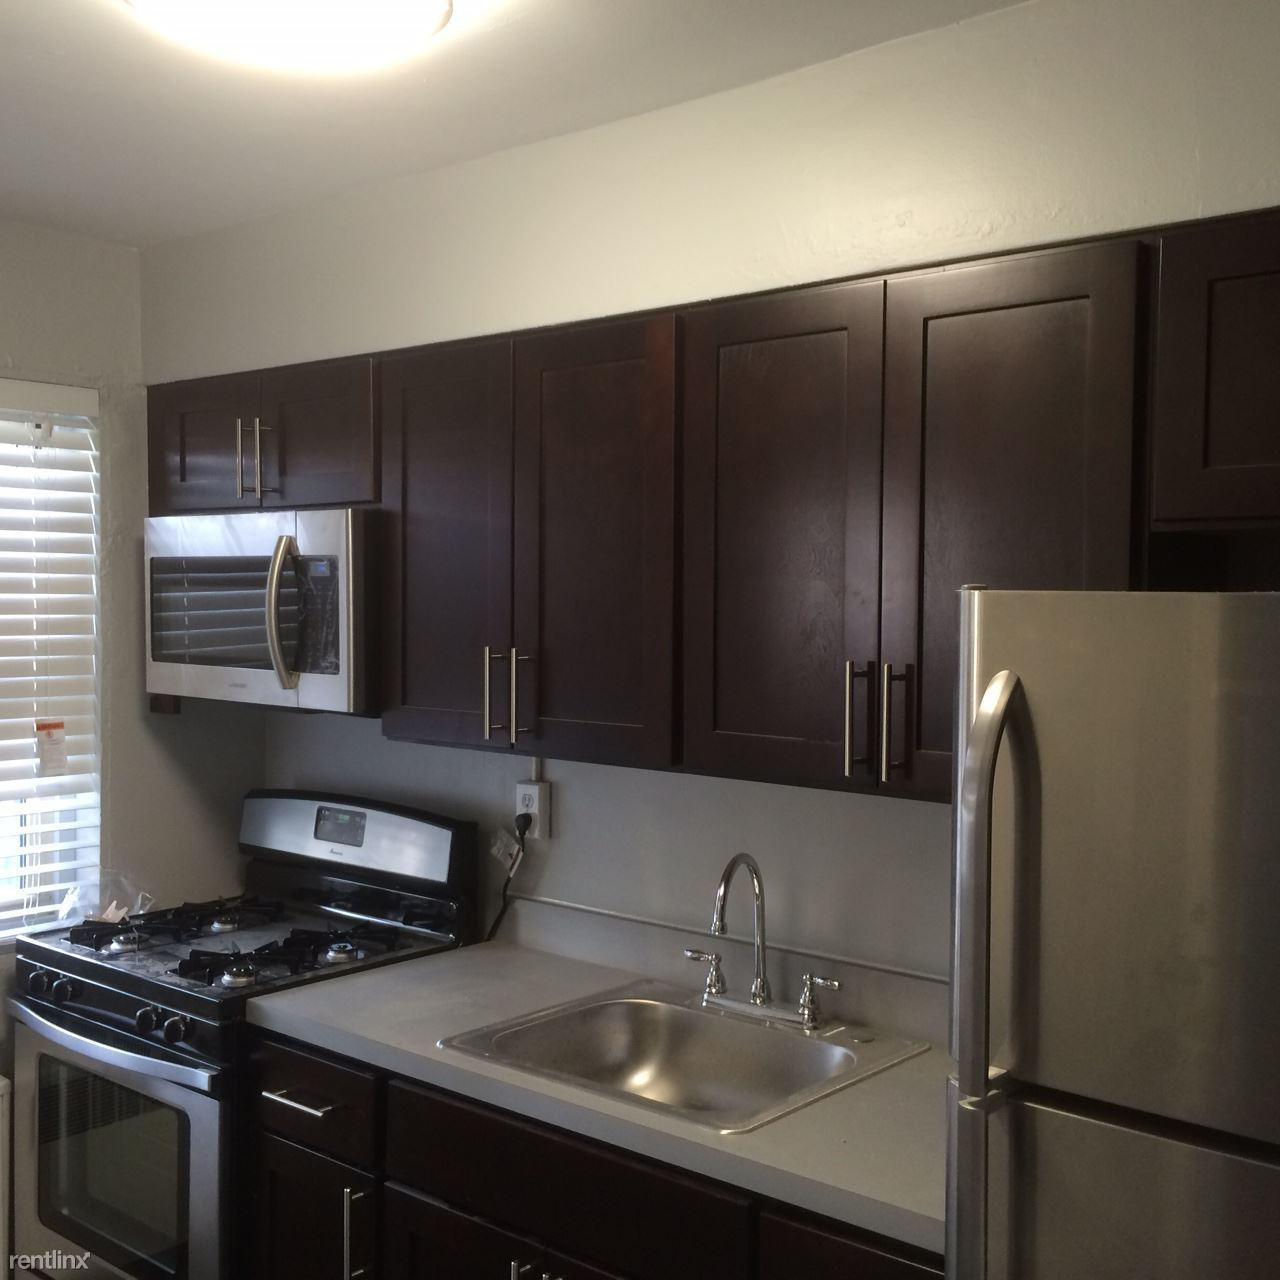 7330 Germantown Ave - 1145USD / month